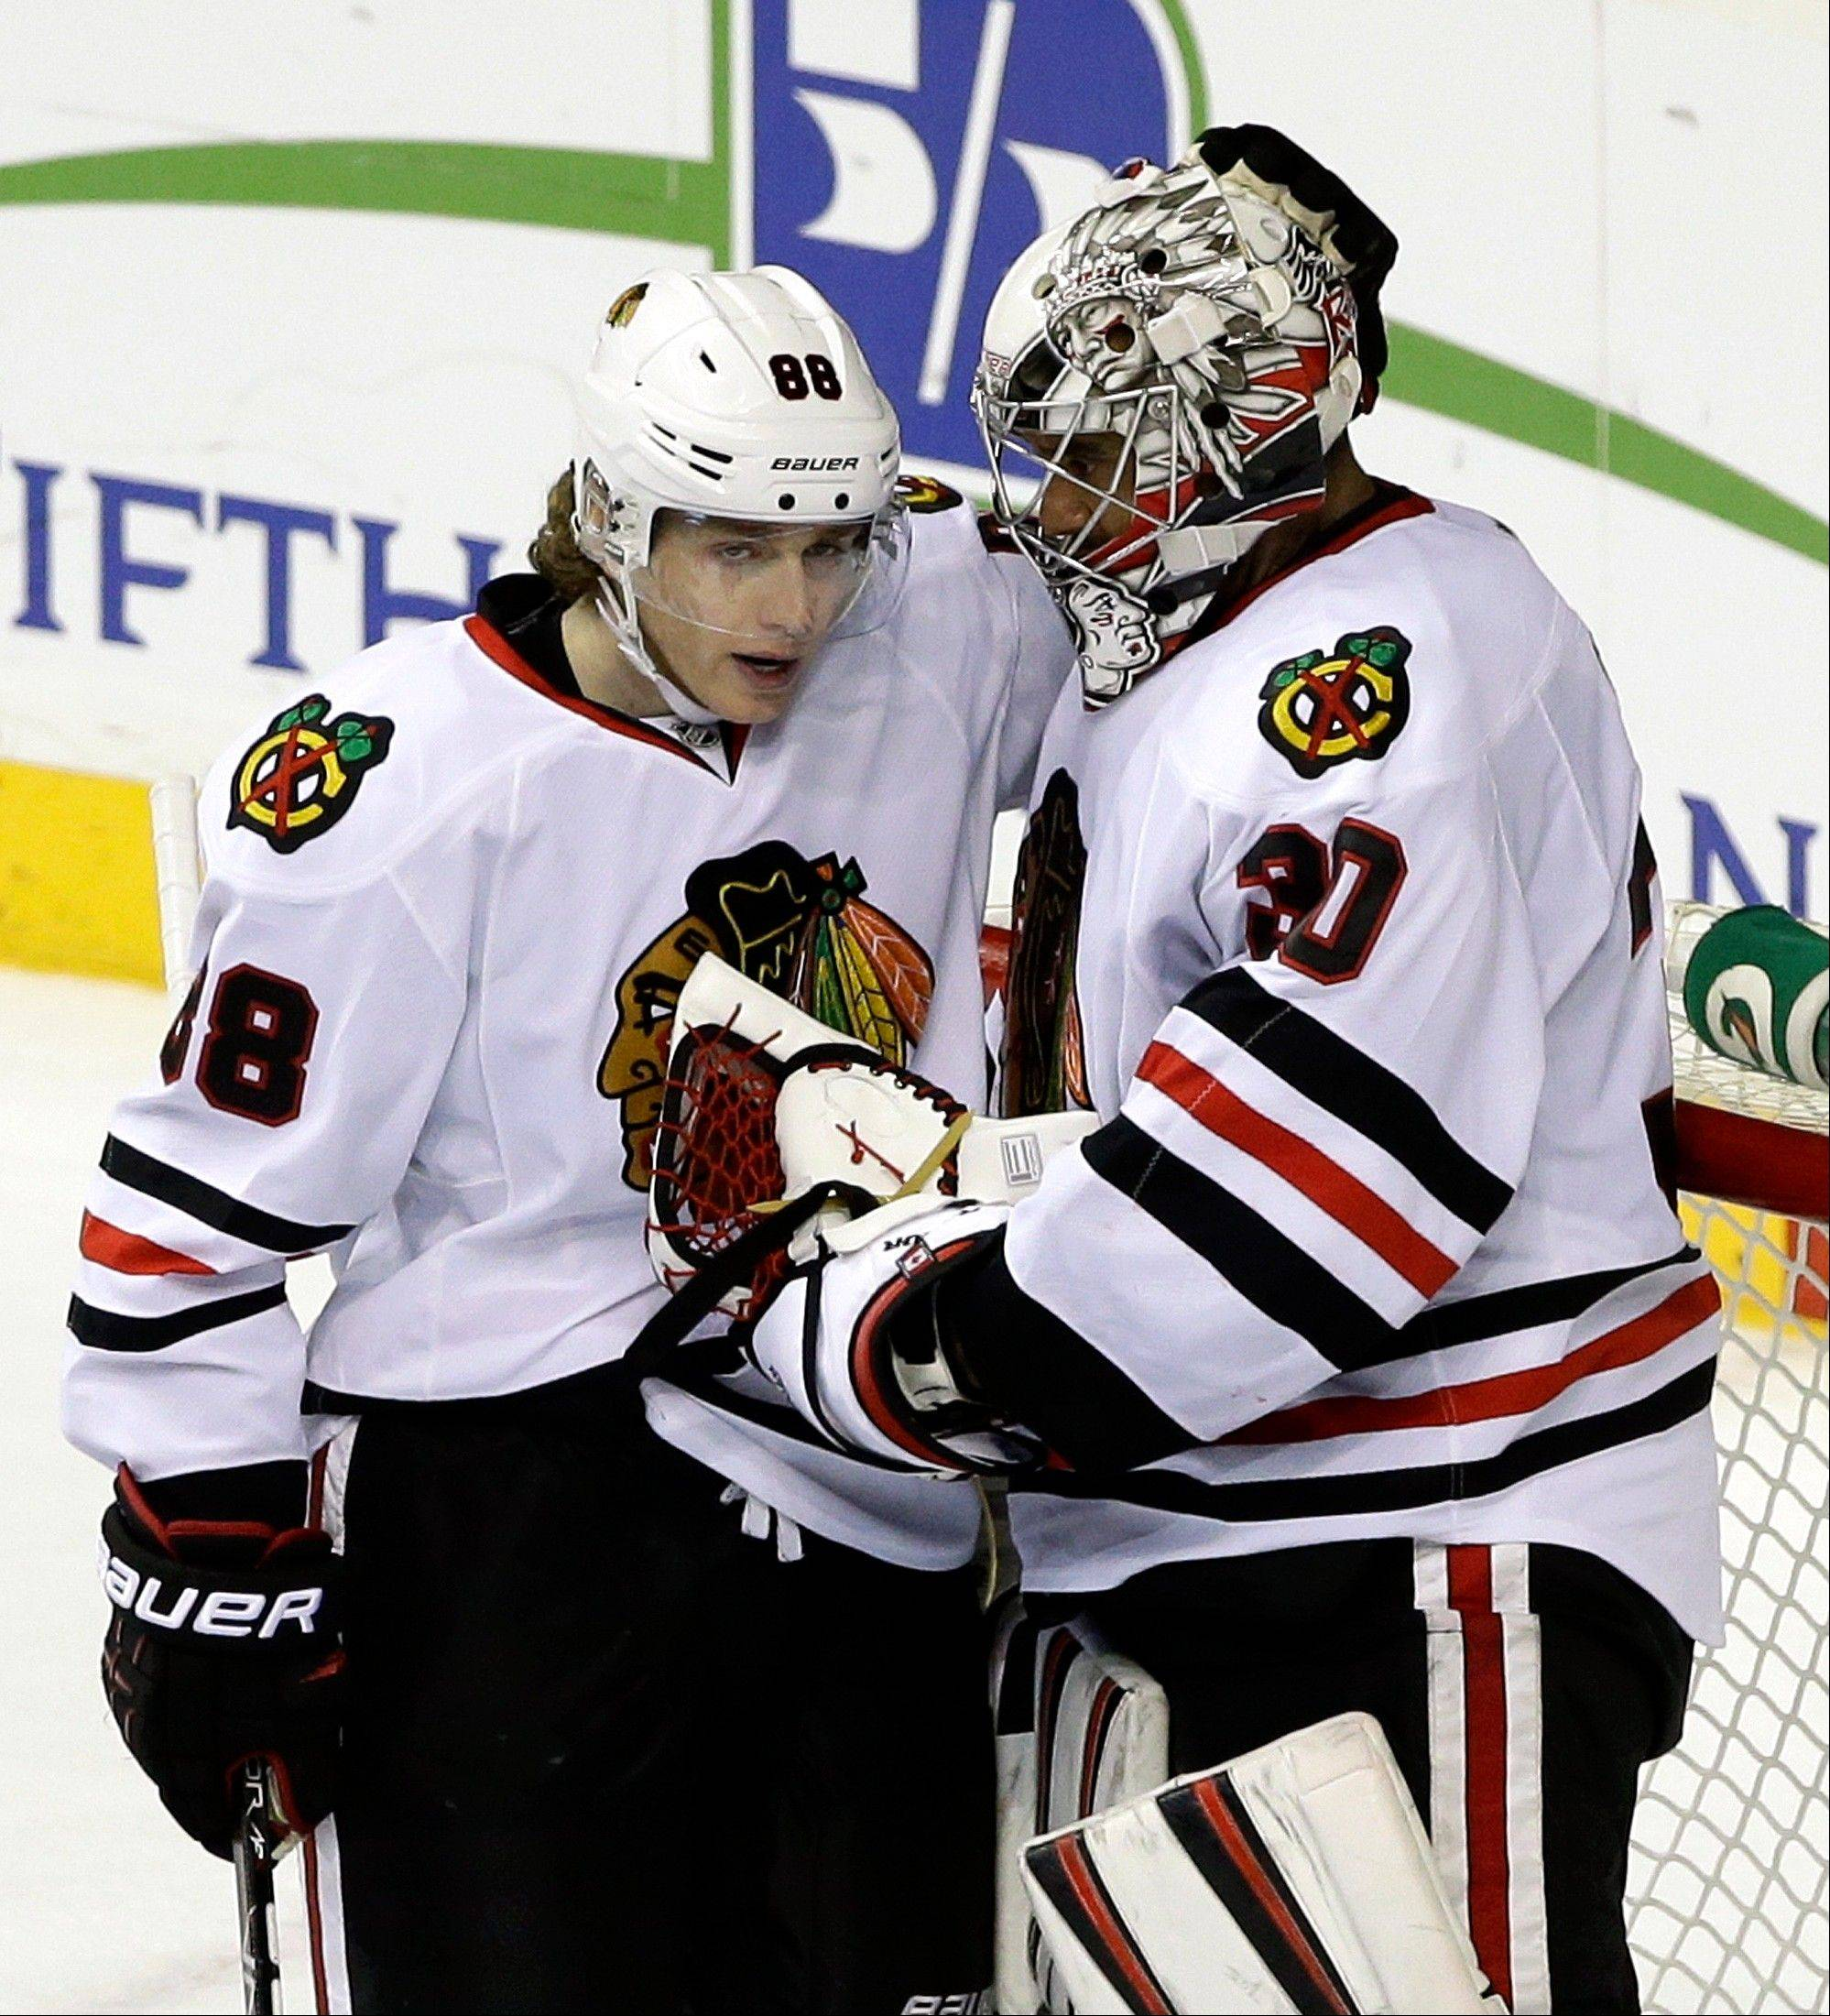 Patrick Kane congratulates goalie Ray Emery after the Blackhawks shut out the Nashville Predators on Saturday.